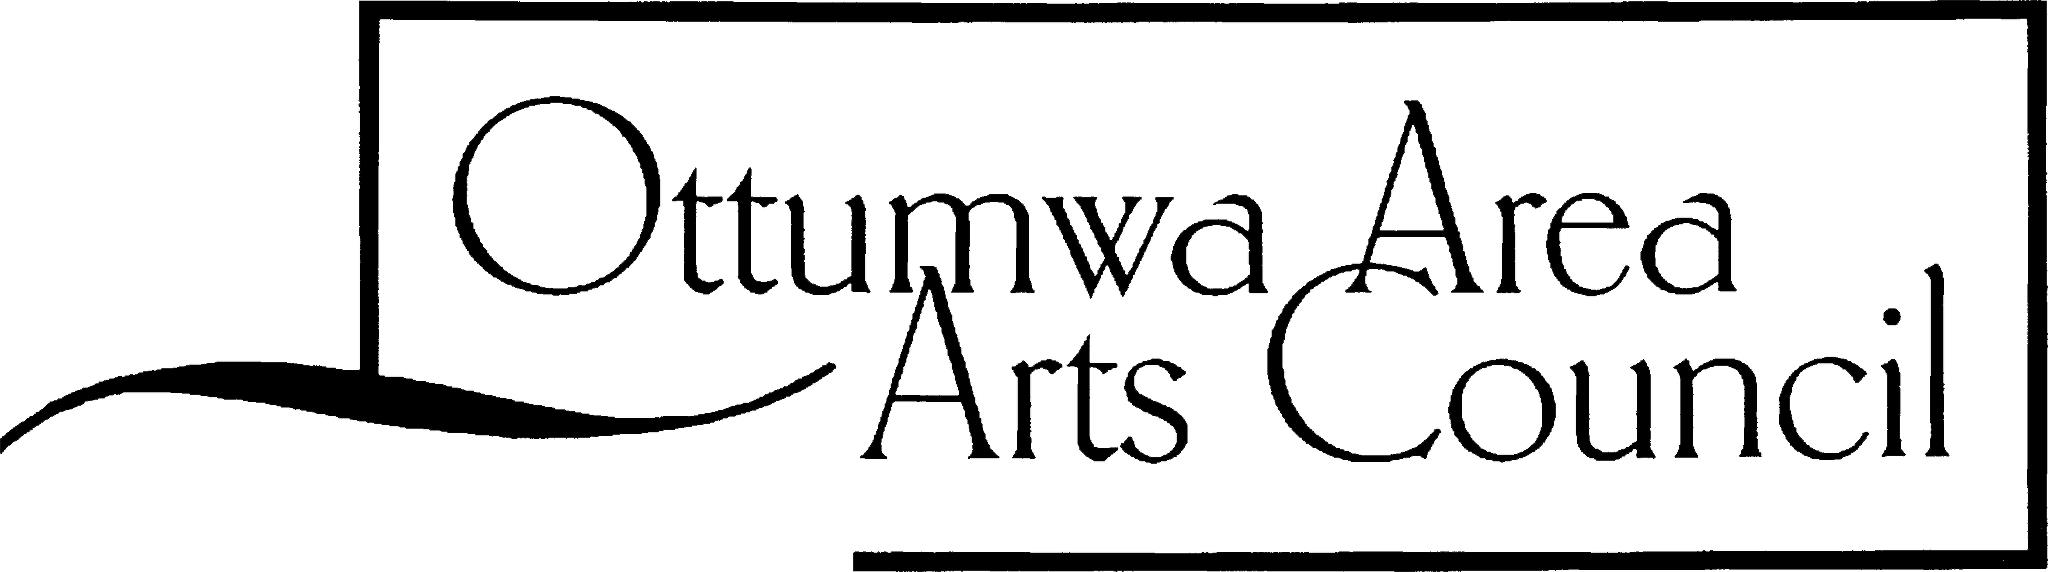 ottumwa area arts council logo.jpg